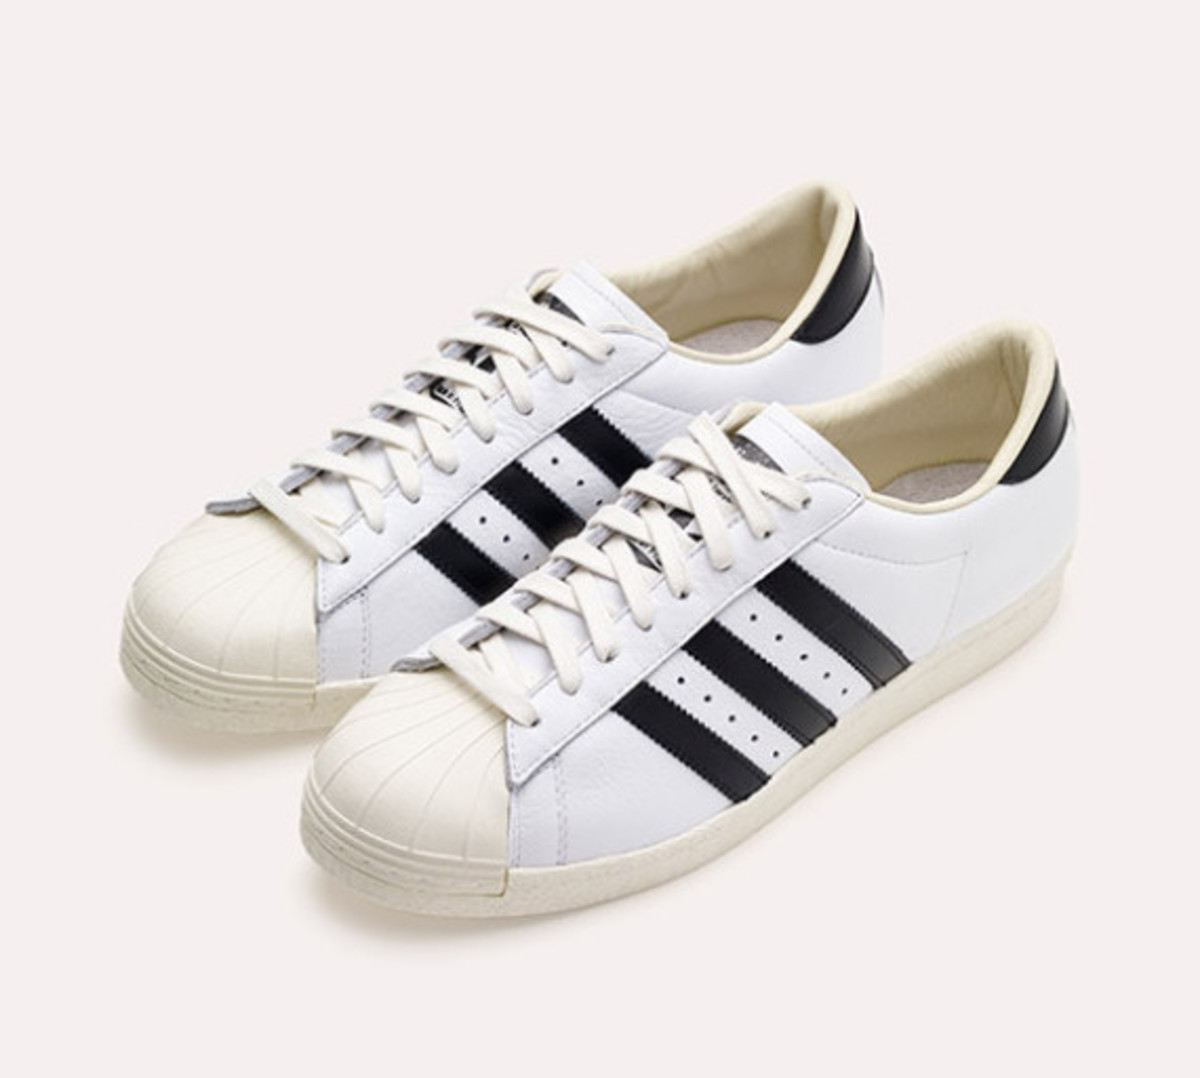 adidas-consortium-superstar-made-in-france-09